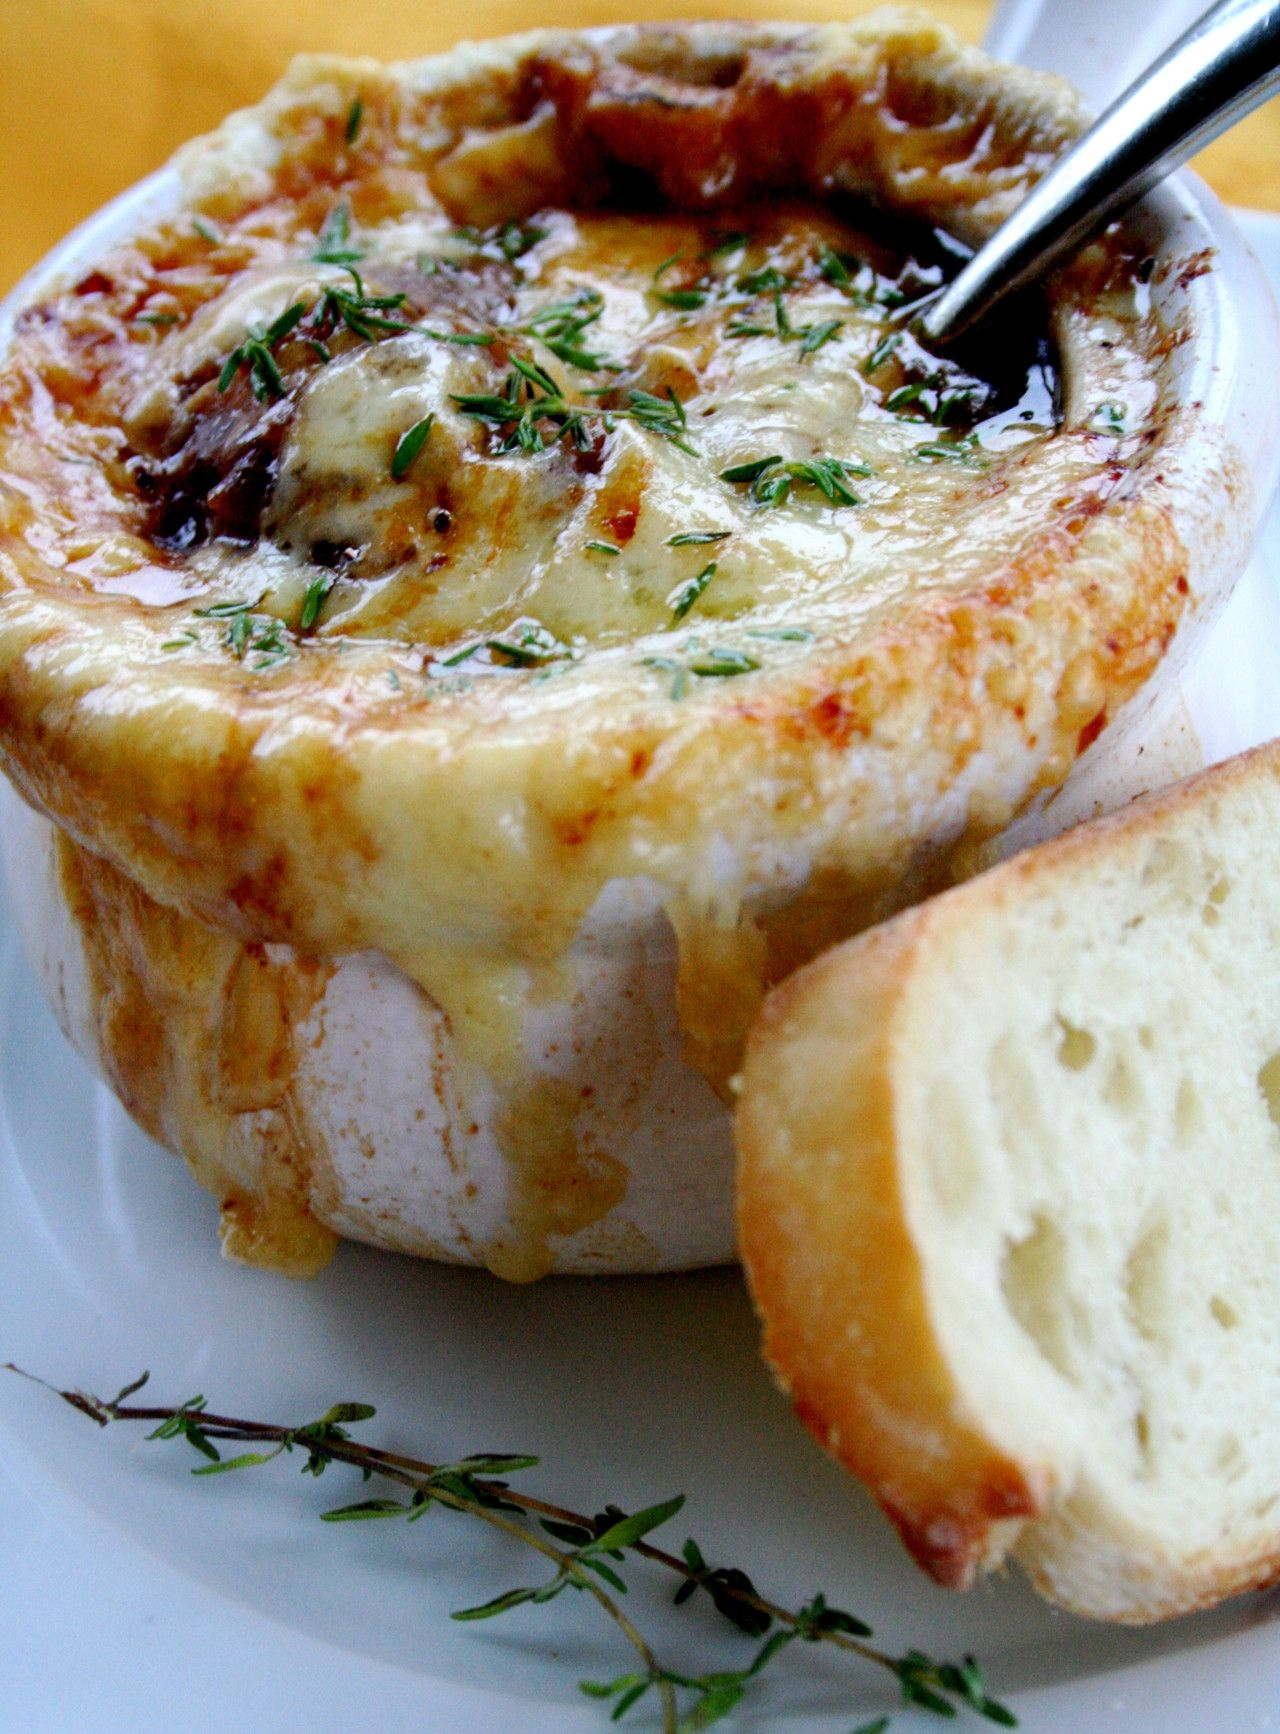 French Onion Soup -     One of the few things I must get if it's on the menu at a nice restaurant.